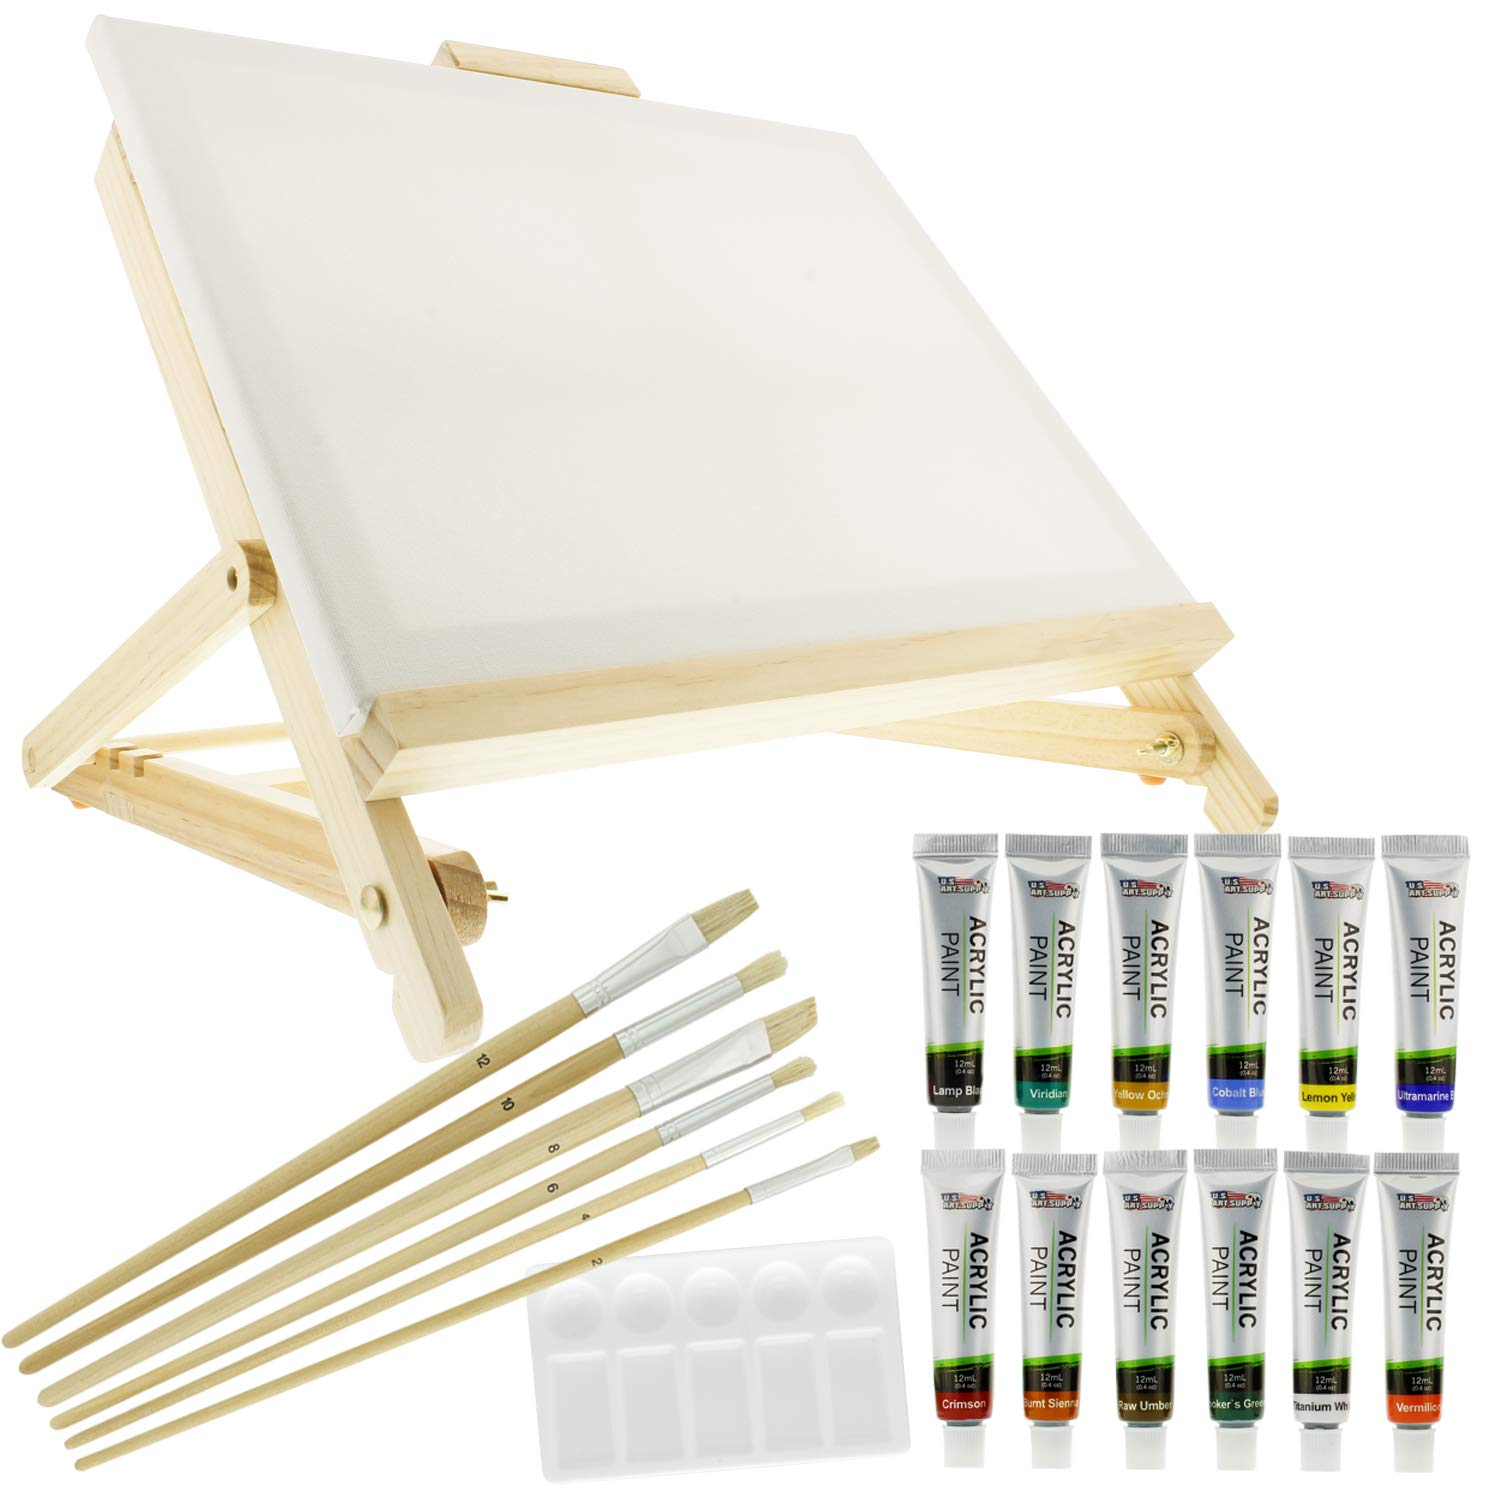 US Art Supply 21-Piece Acrylic Painting Table Easel Set with, 12-Tubes Acrylic Painting Colors, 11''x14'' Stretched Canvas, 6 Artist Brushes, Plastic Palette with 10 Wells by US Art Supply (Image #7)